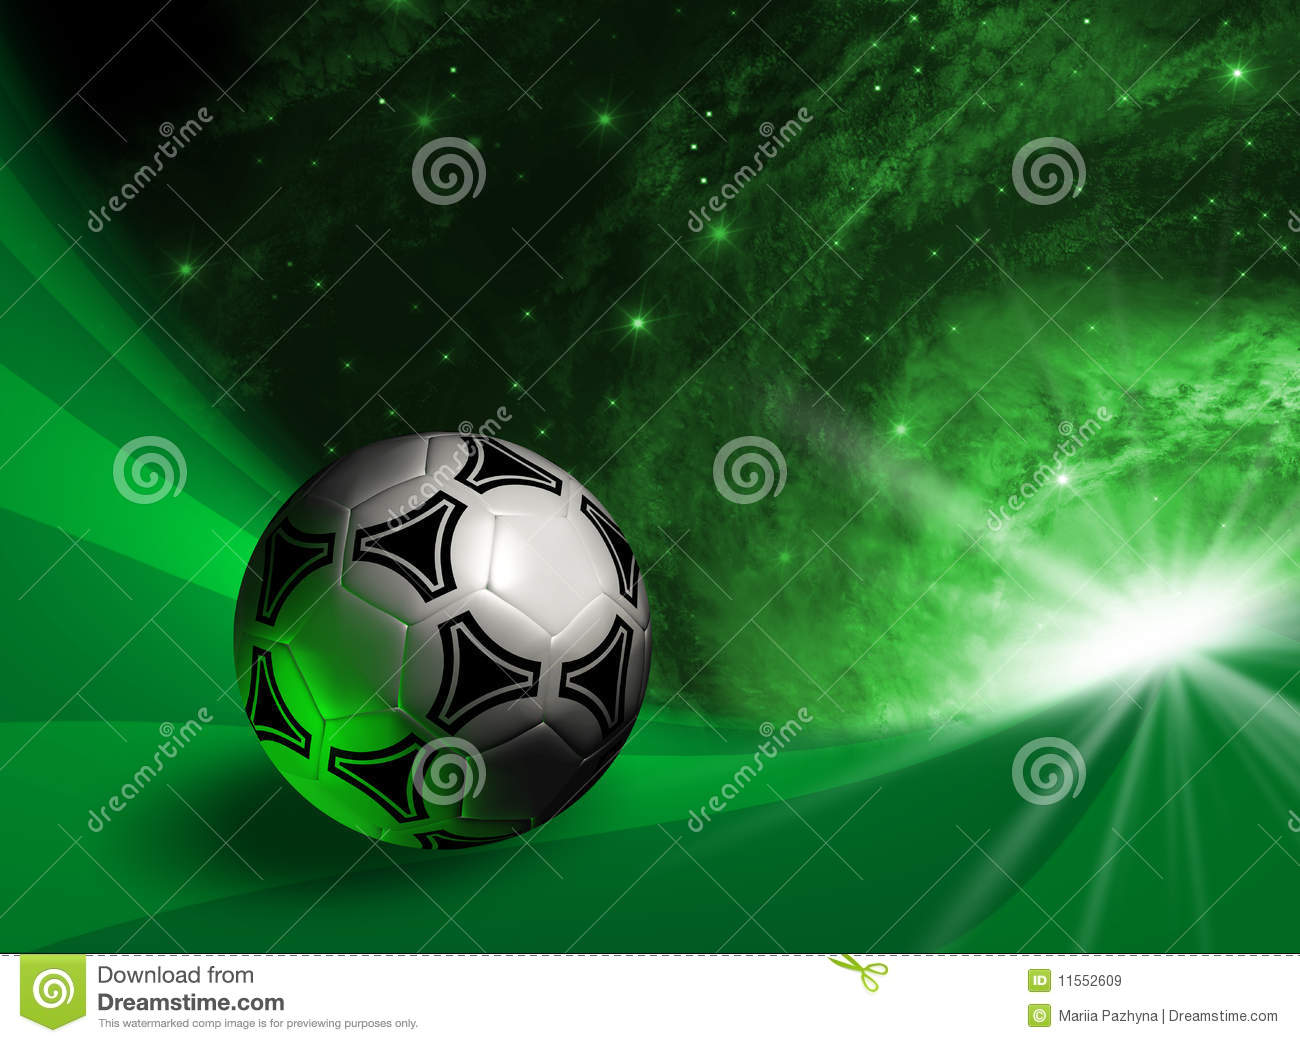 Futuristic background with soccer ball